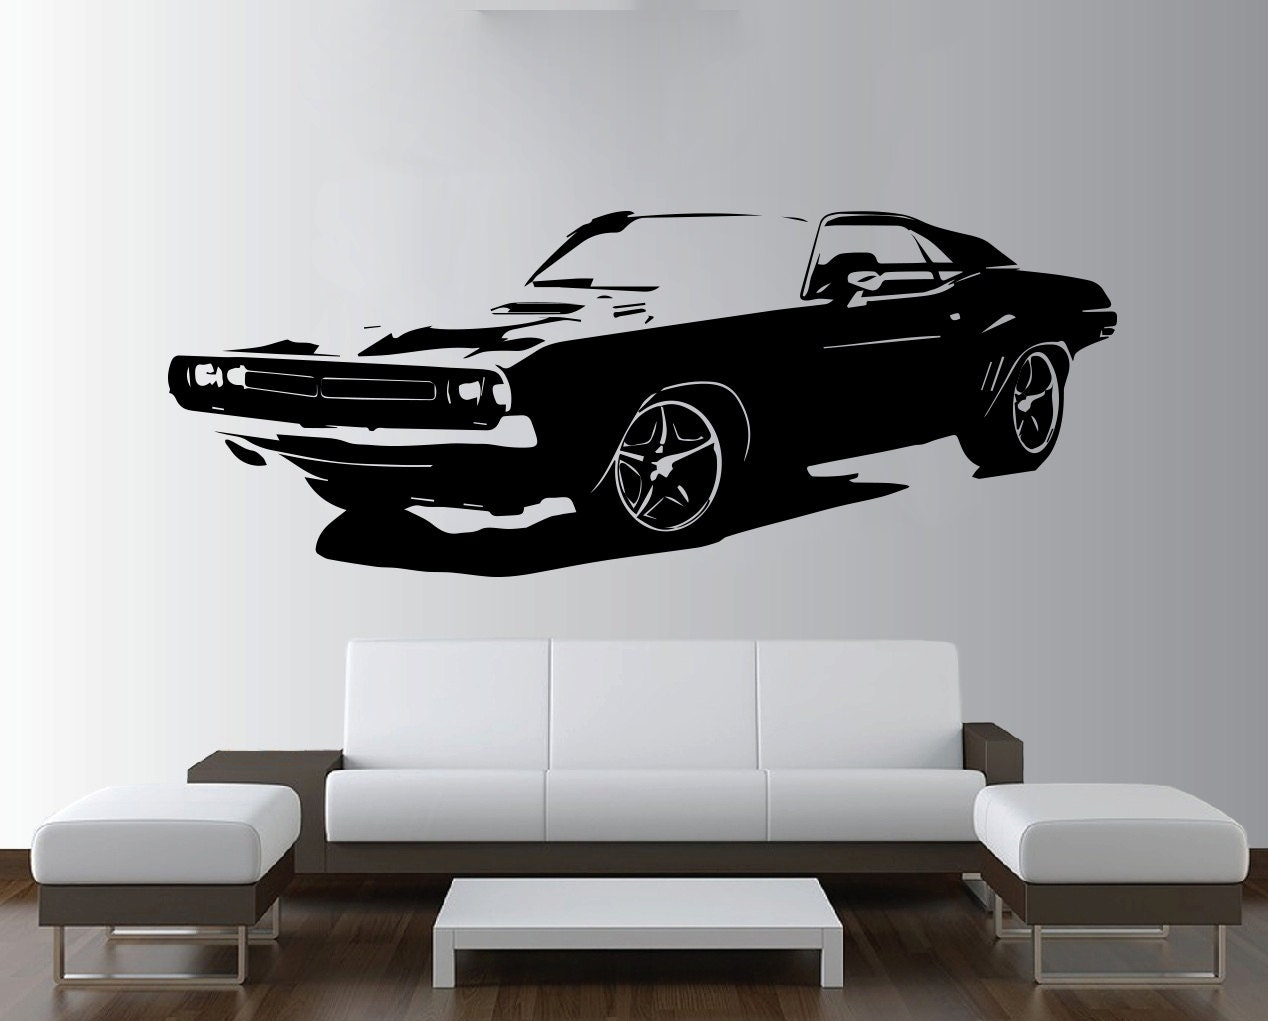 Large car dodge challenger muscle wall art decal mural sticker for Autocollant mural